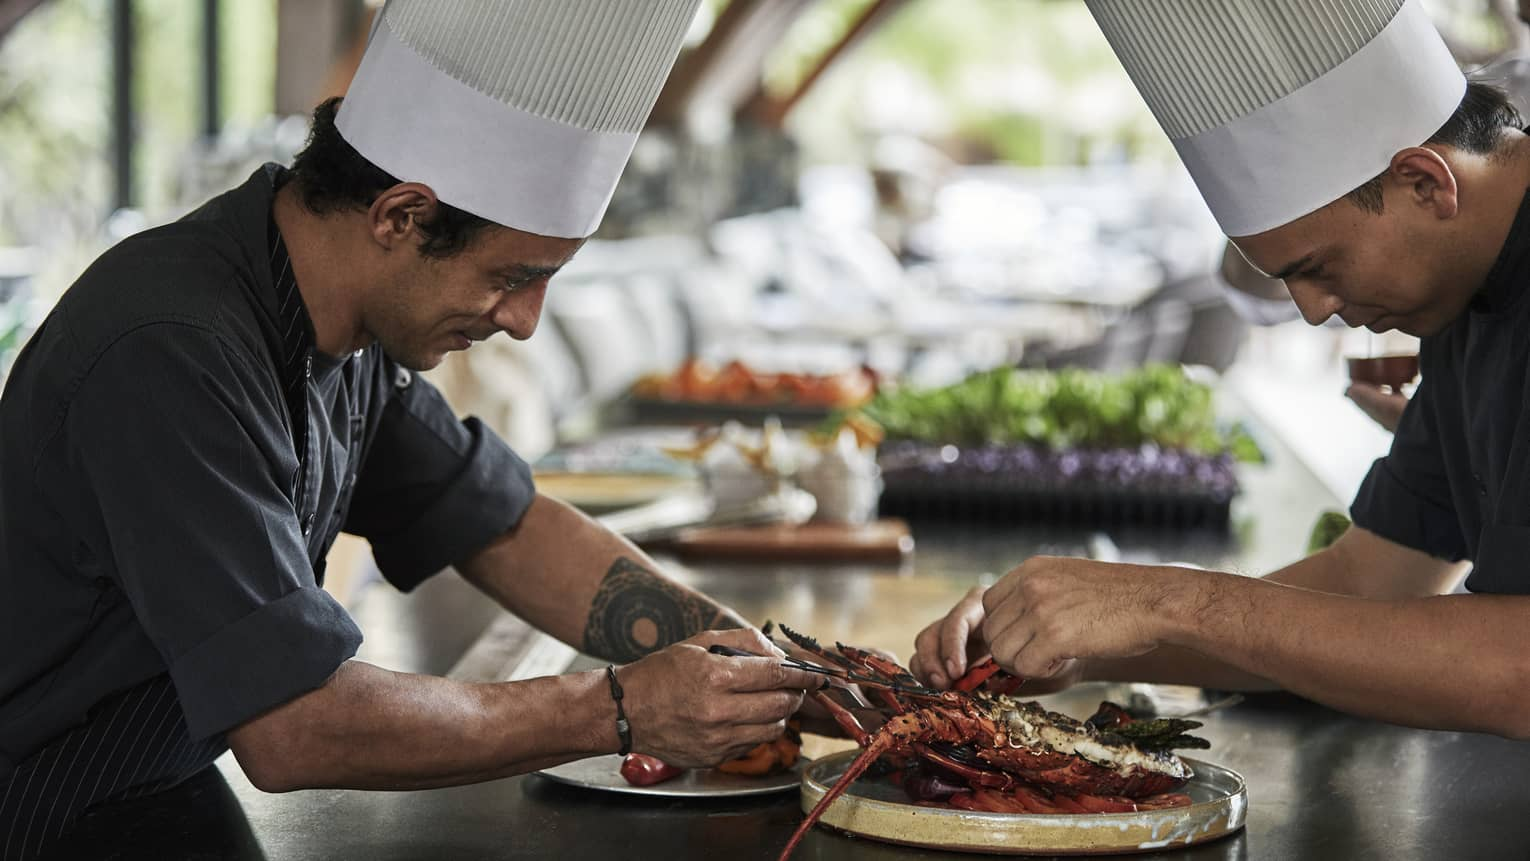 Two chefs in uniform assemble grilled lobster entree on long kitchen counter